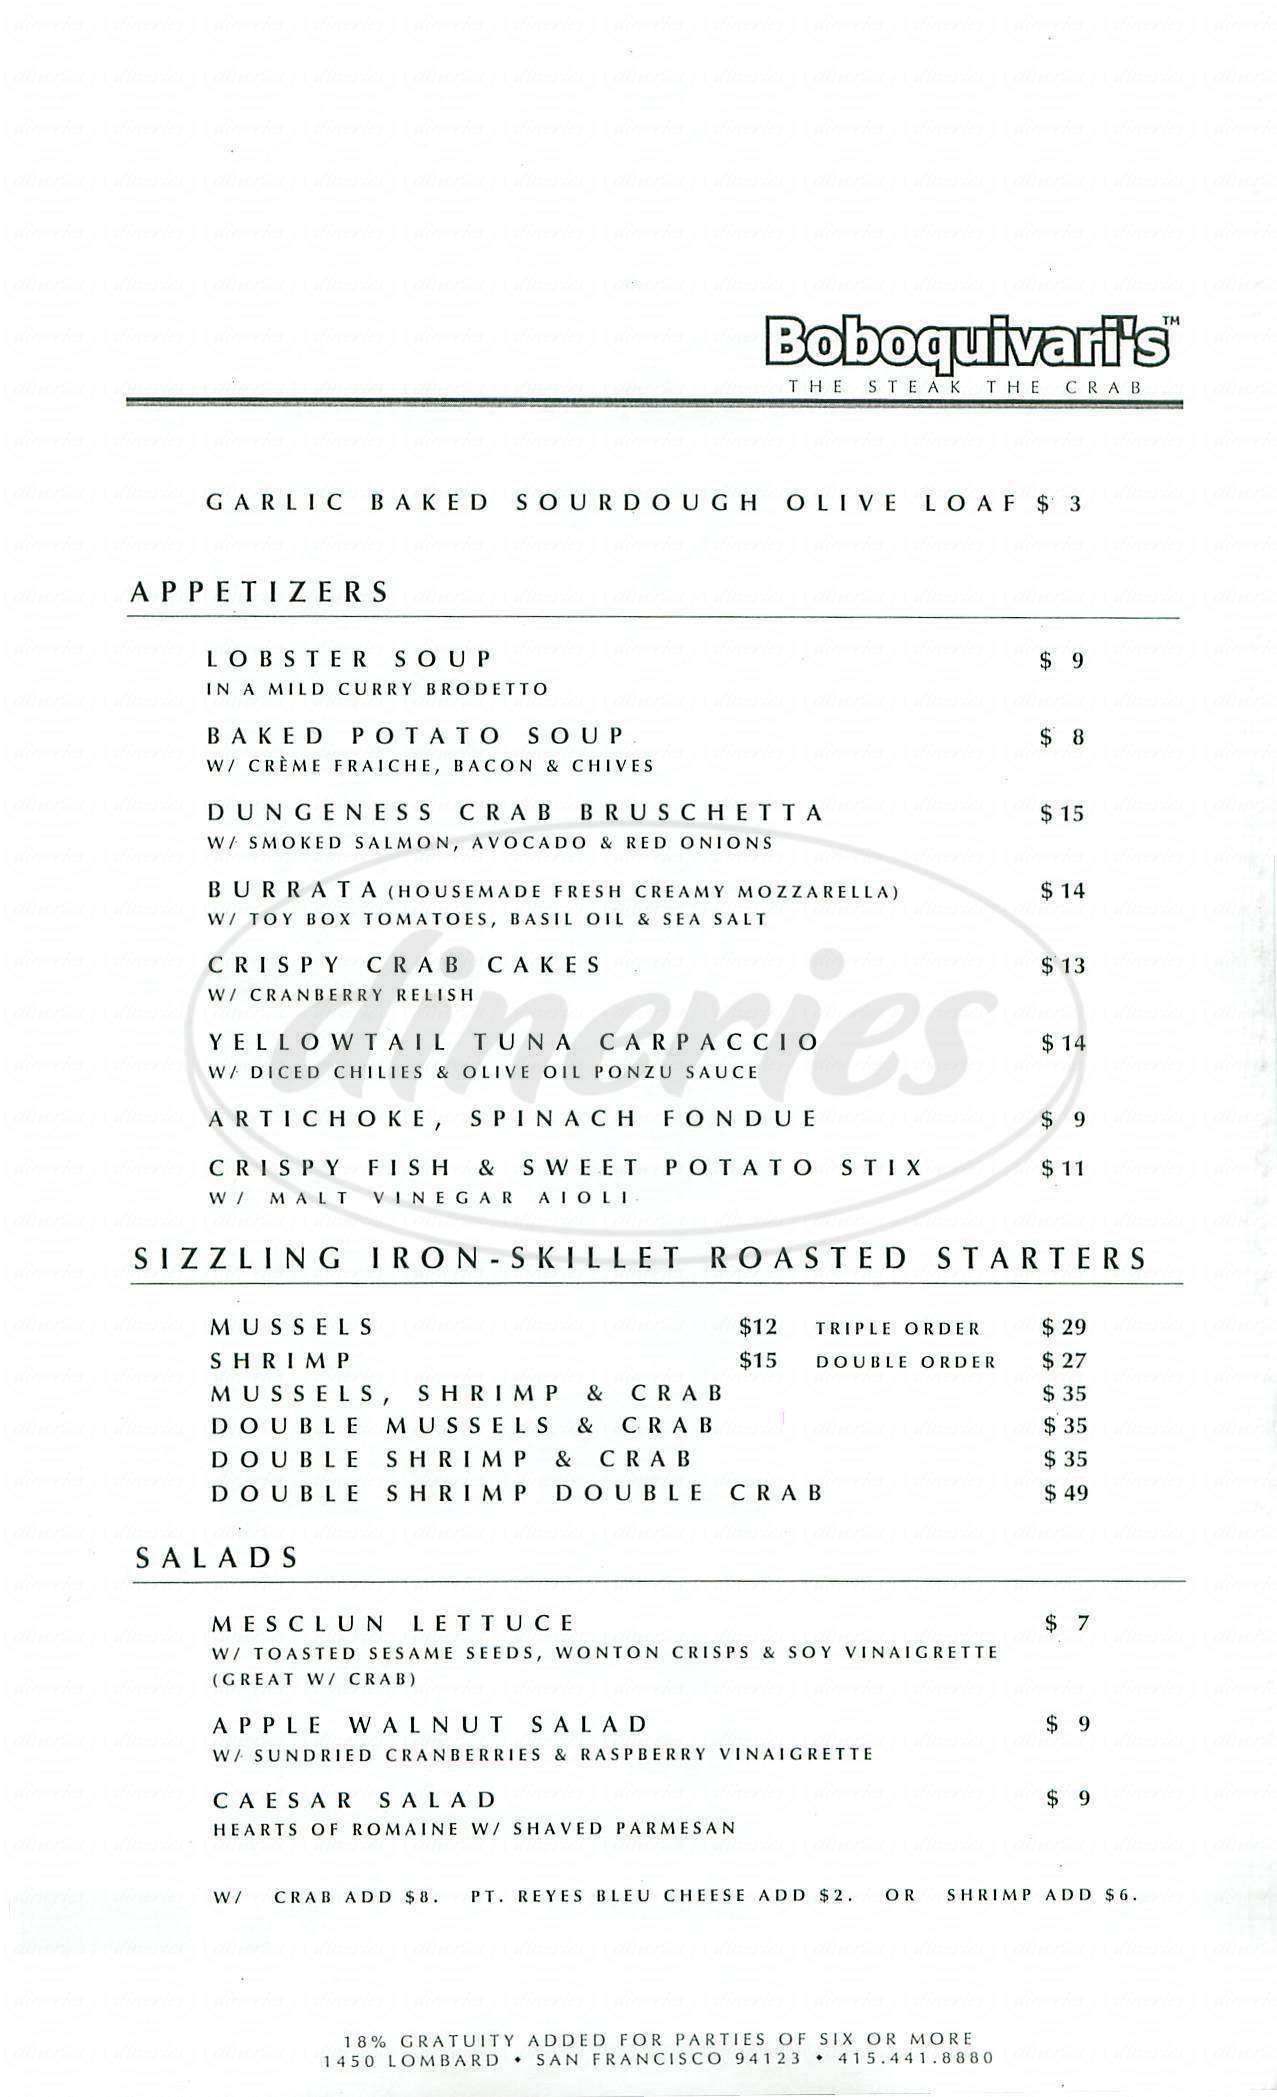 menu for Boboquivari's